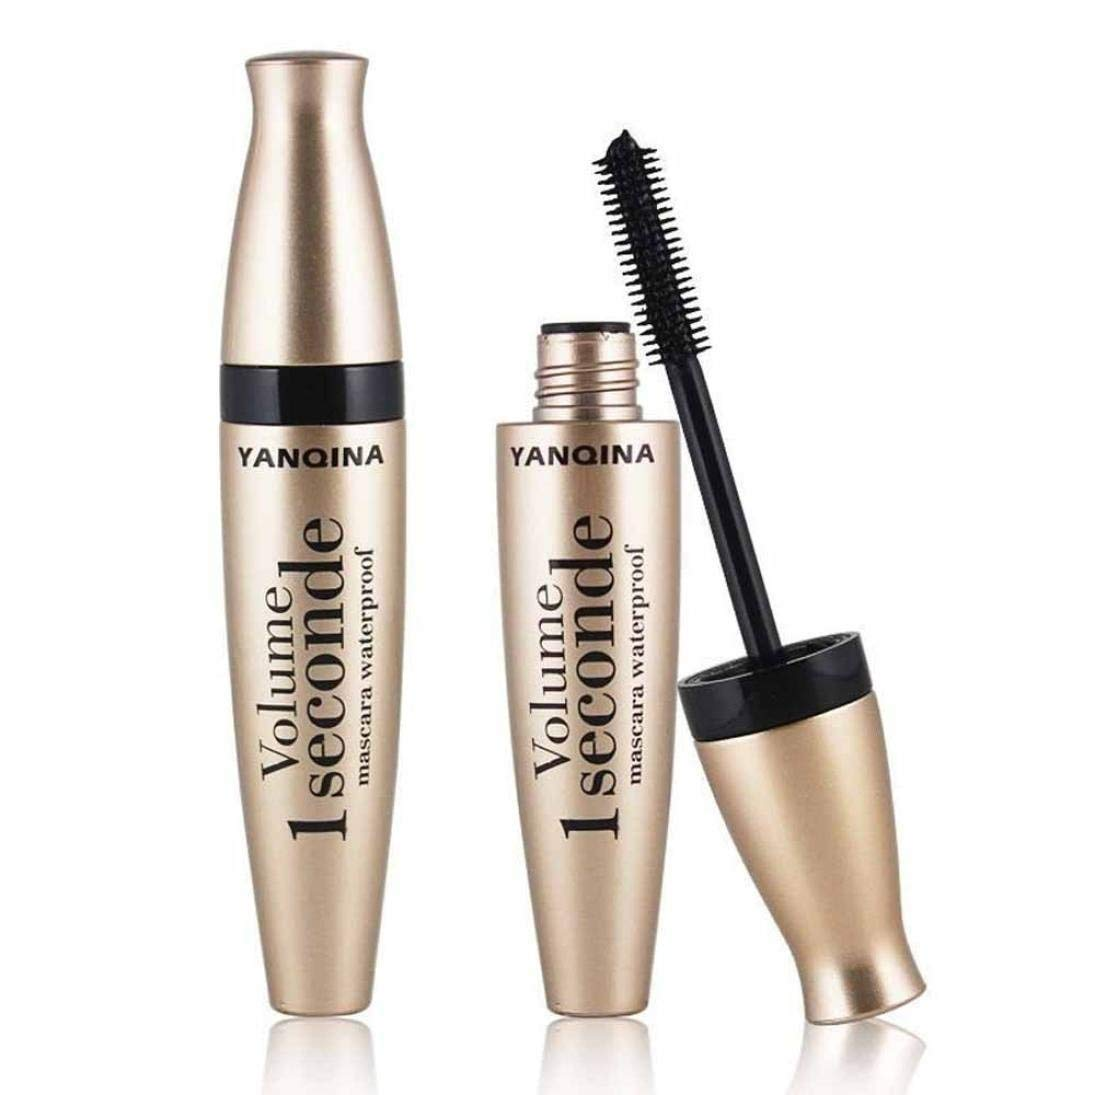 Weite 3D Fiber Lash Mascara Best for Thickening Lengthening Paraben Free Highest Quality Natural Non Toxic Hypoallergenic Ingredients (Black)